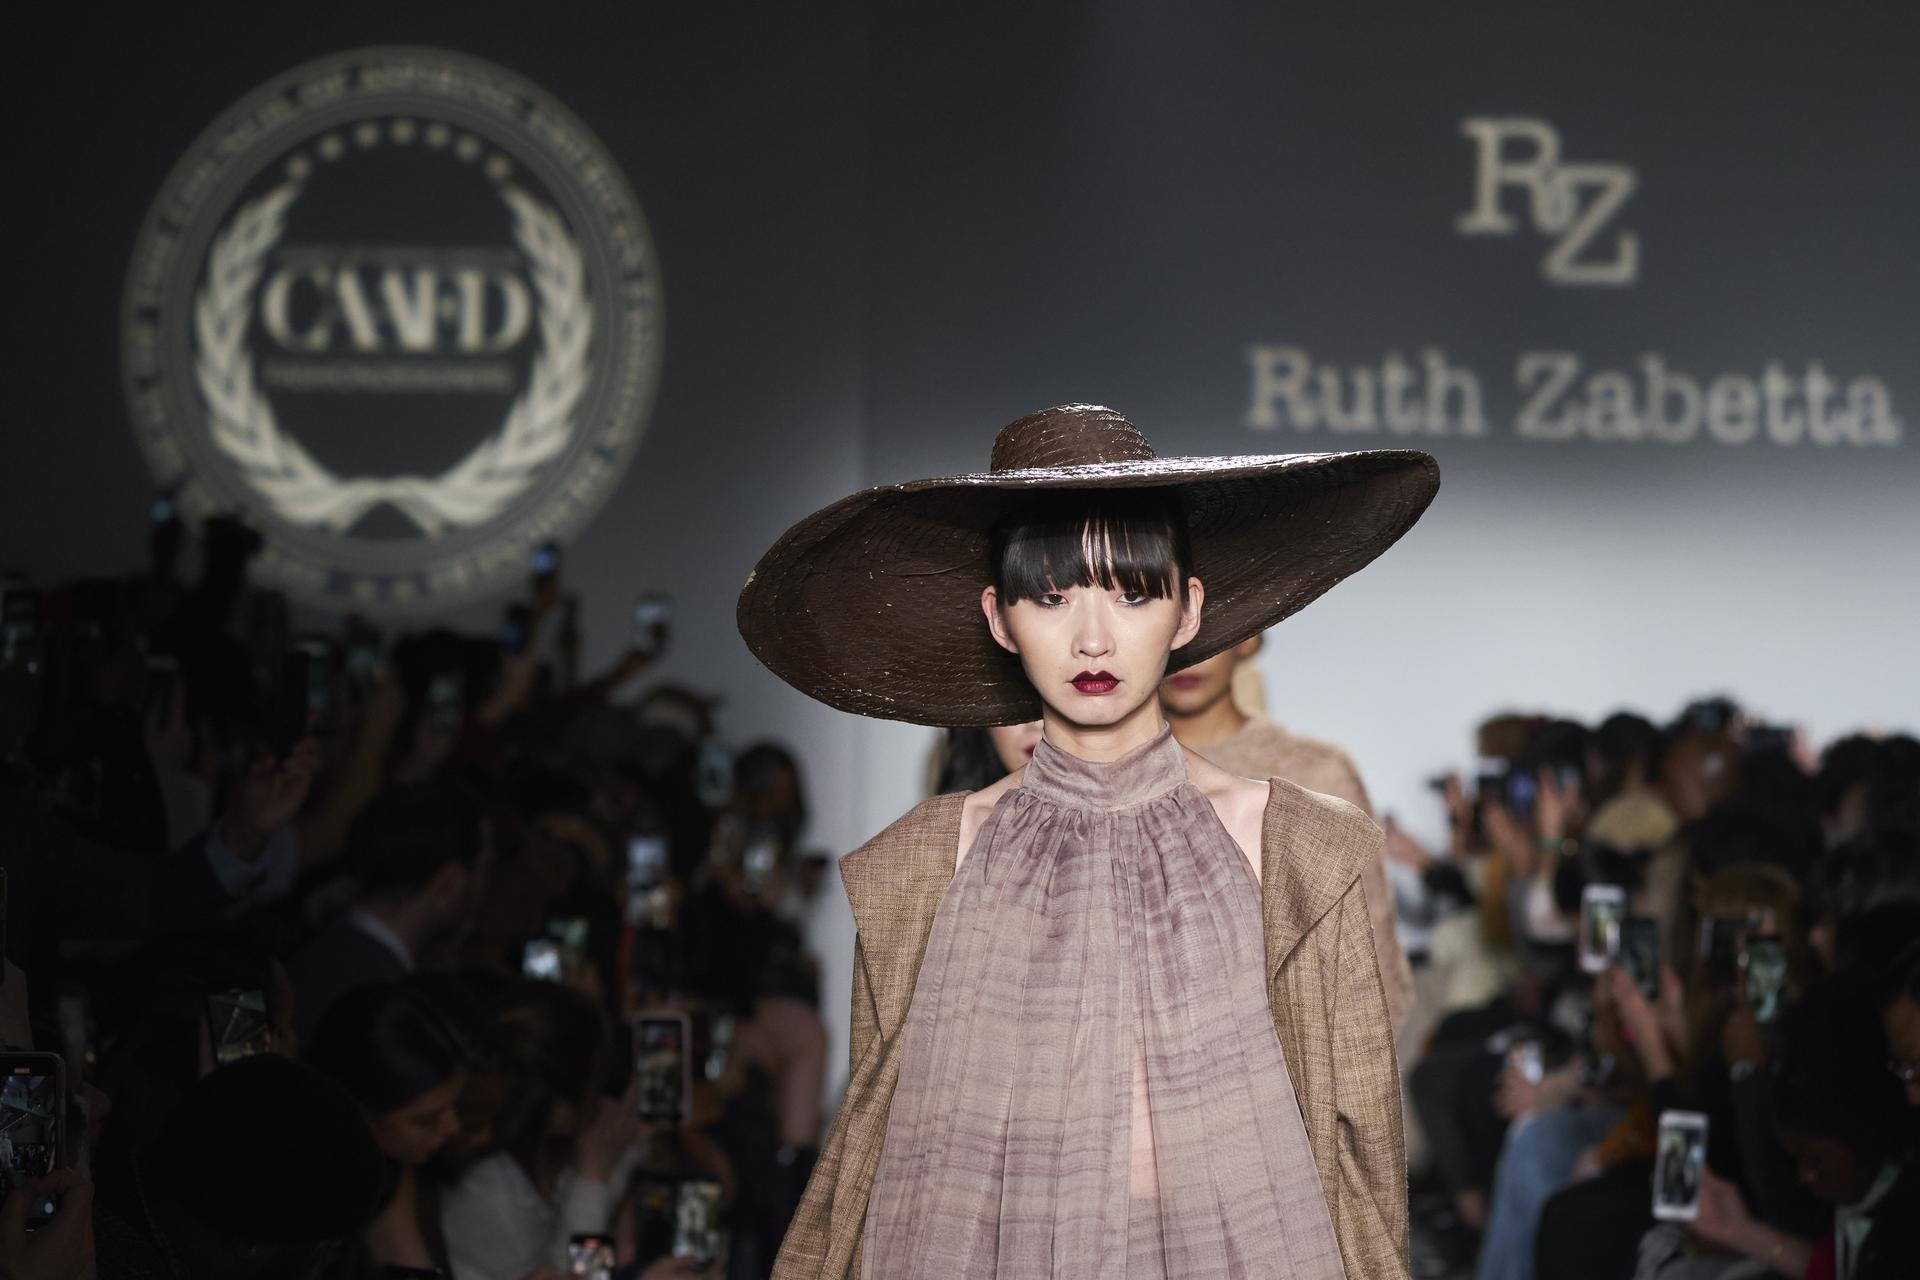 Caafd Selected Designers Received Rave Reviews During New York Fashion Week Fall Winter 2020 Showcase